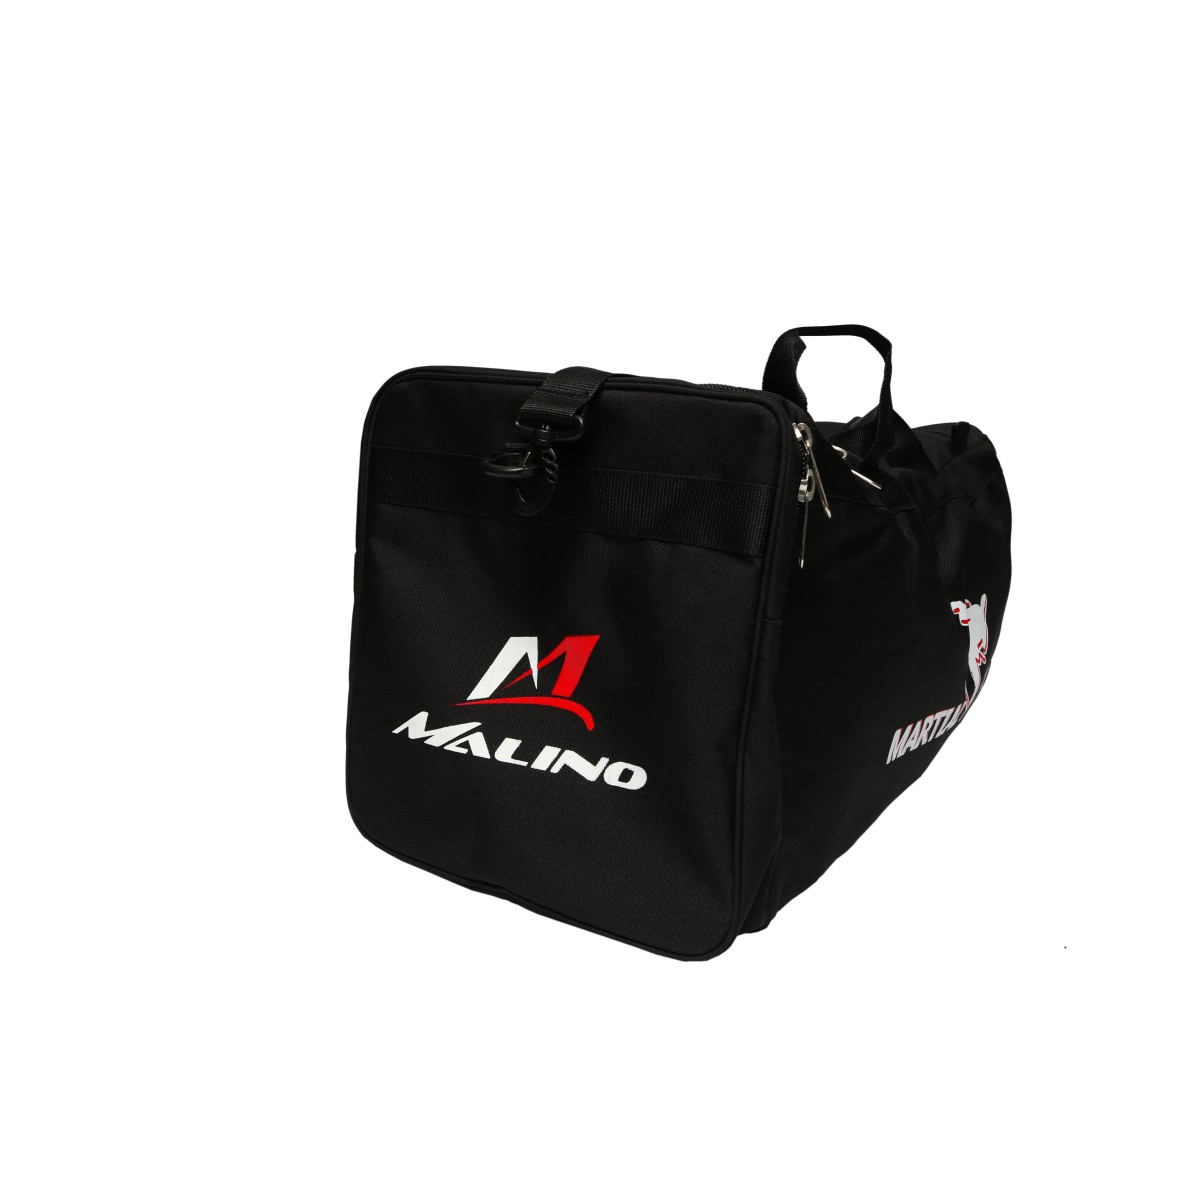 Malino Premium Large Sports Gym Bag Black